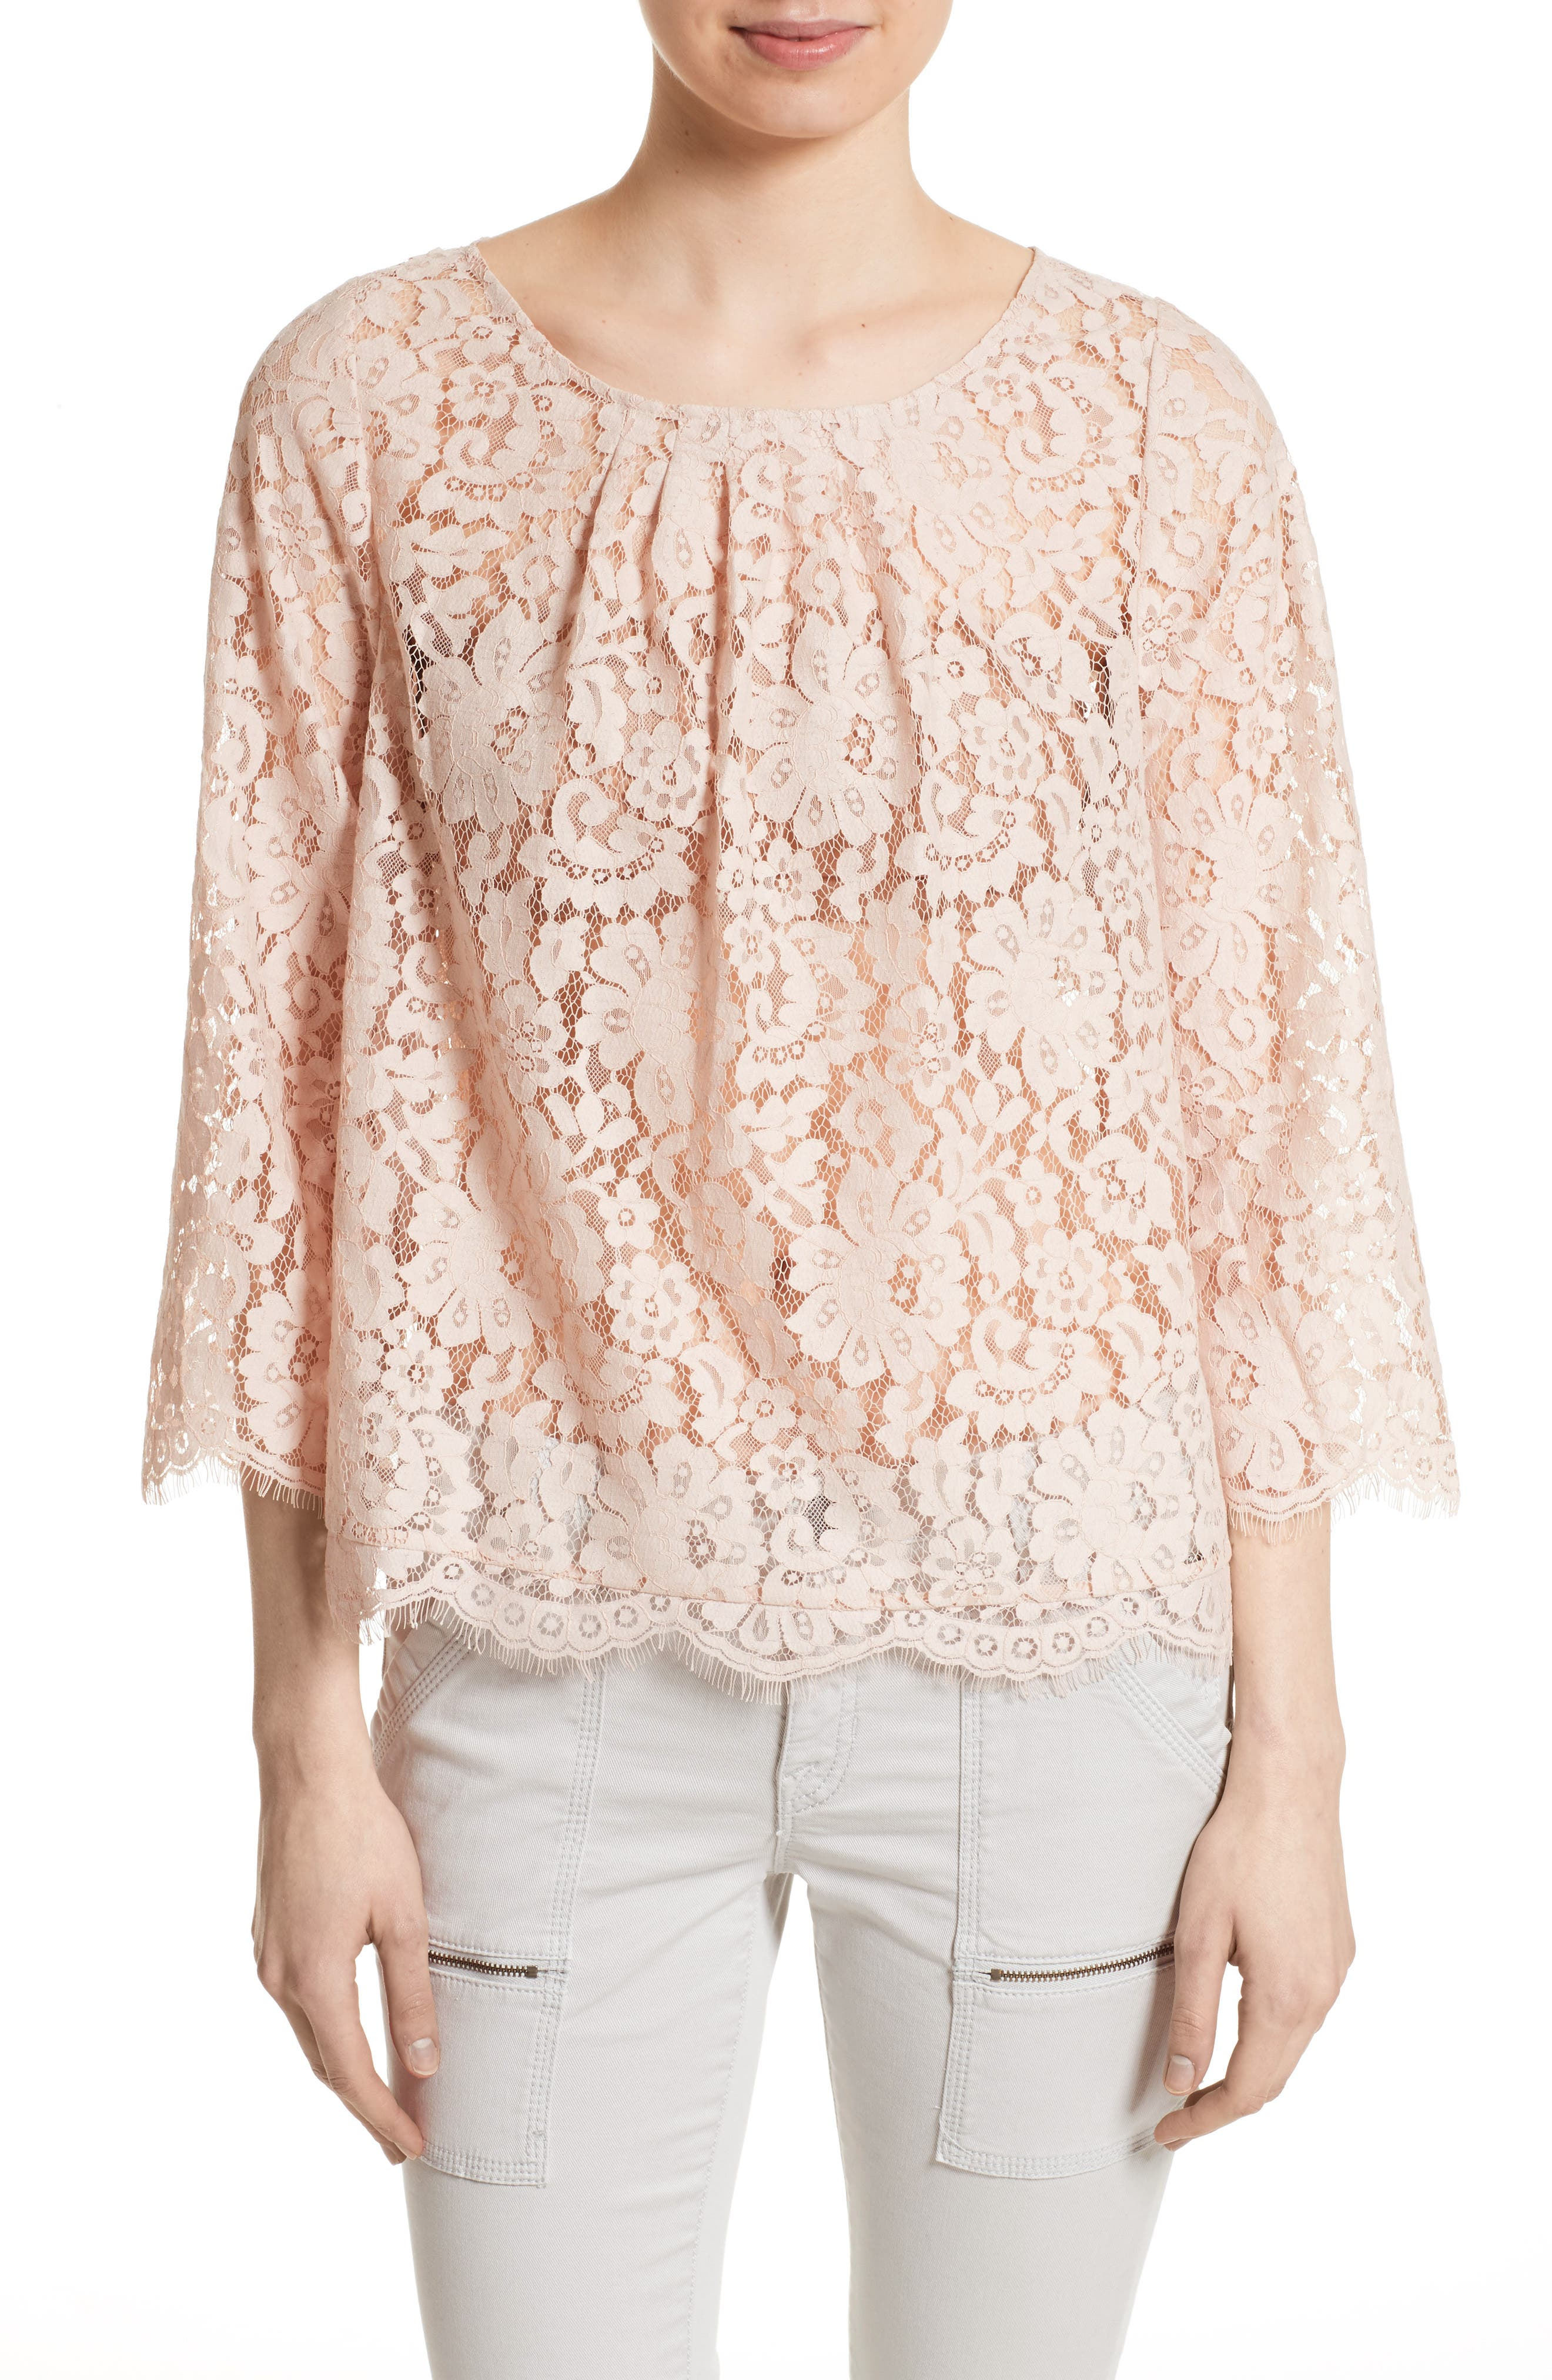 Alternate Image 1 Selected - Joie Cordella Lace Top